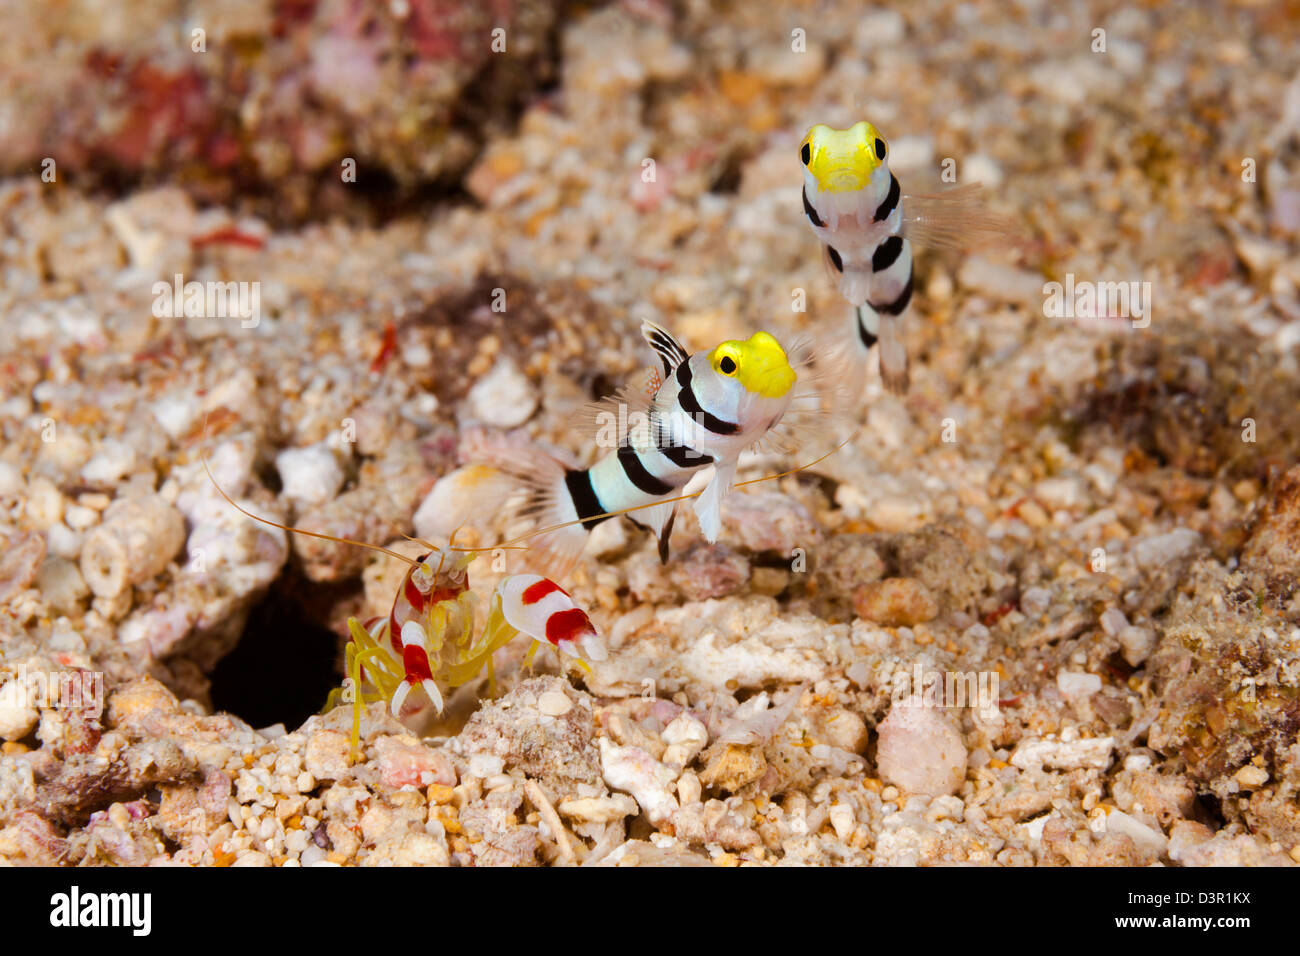 Pair Of Yellownose Shrimp Gobies, Stonogobiops Xanthorhinica, With ...